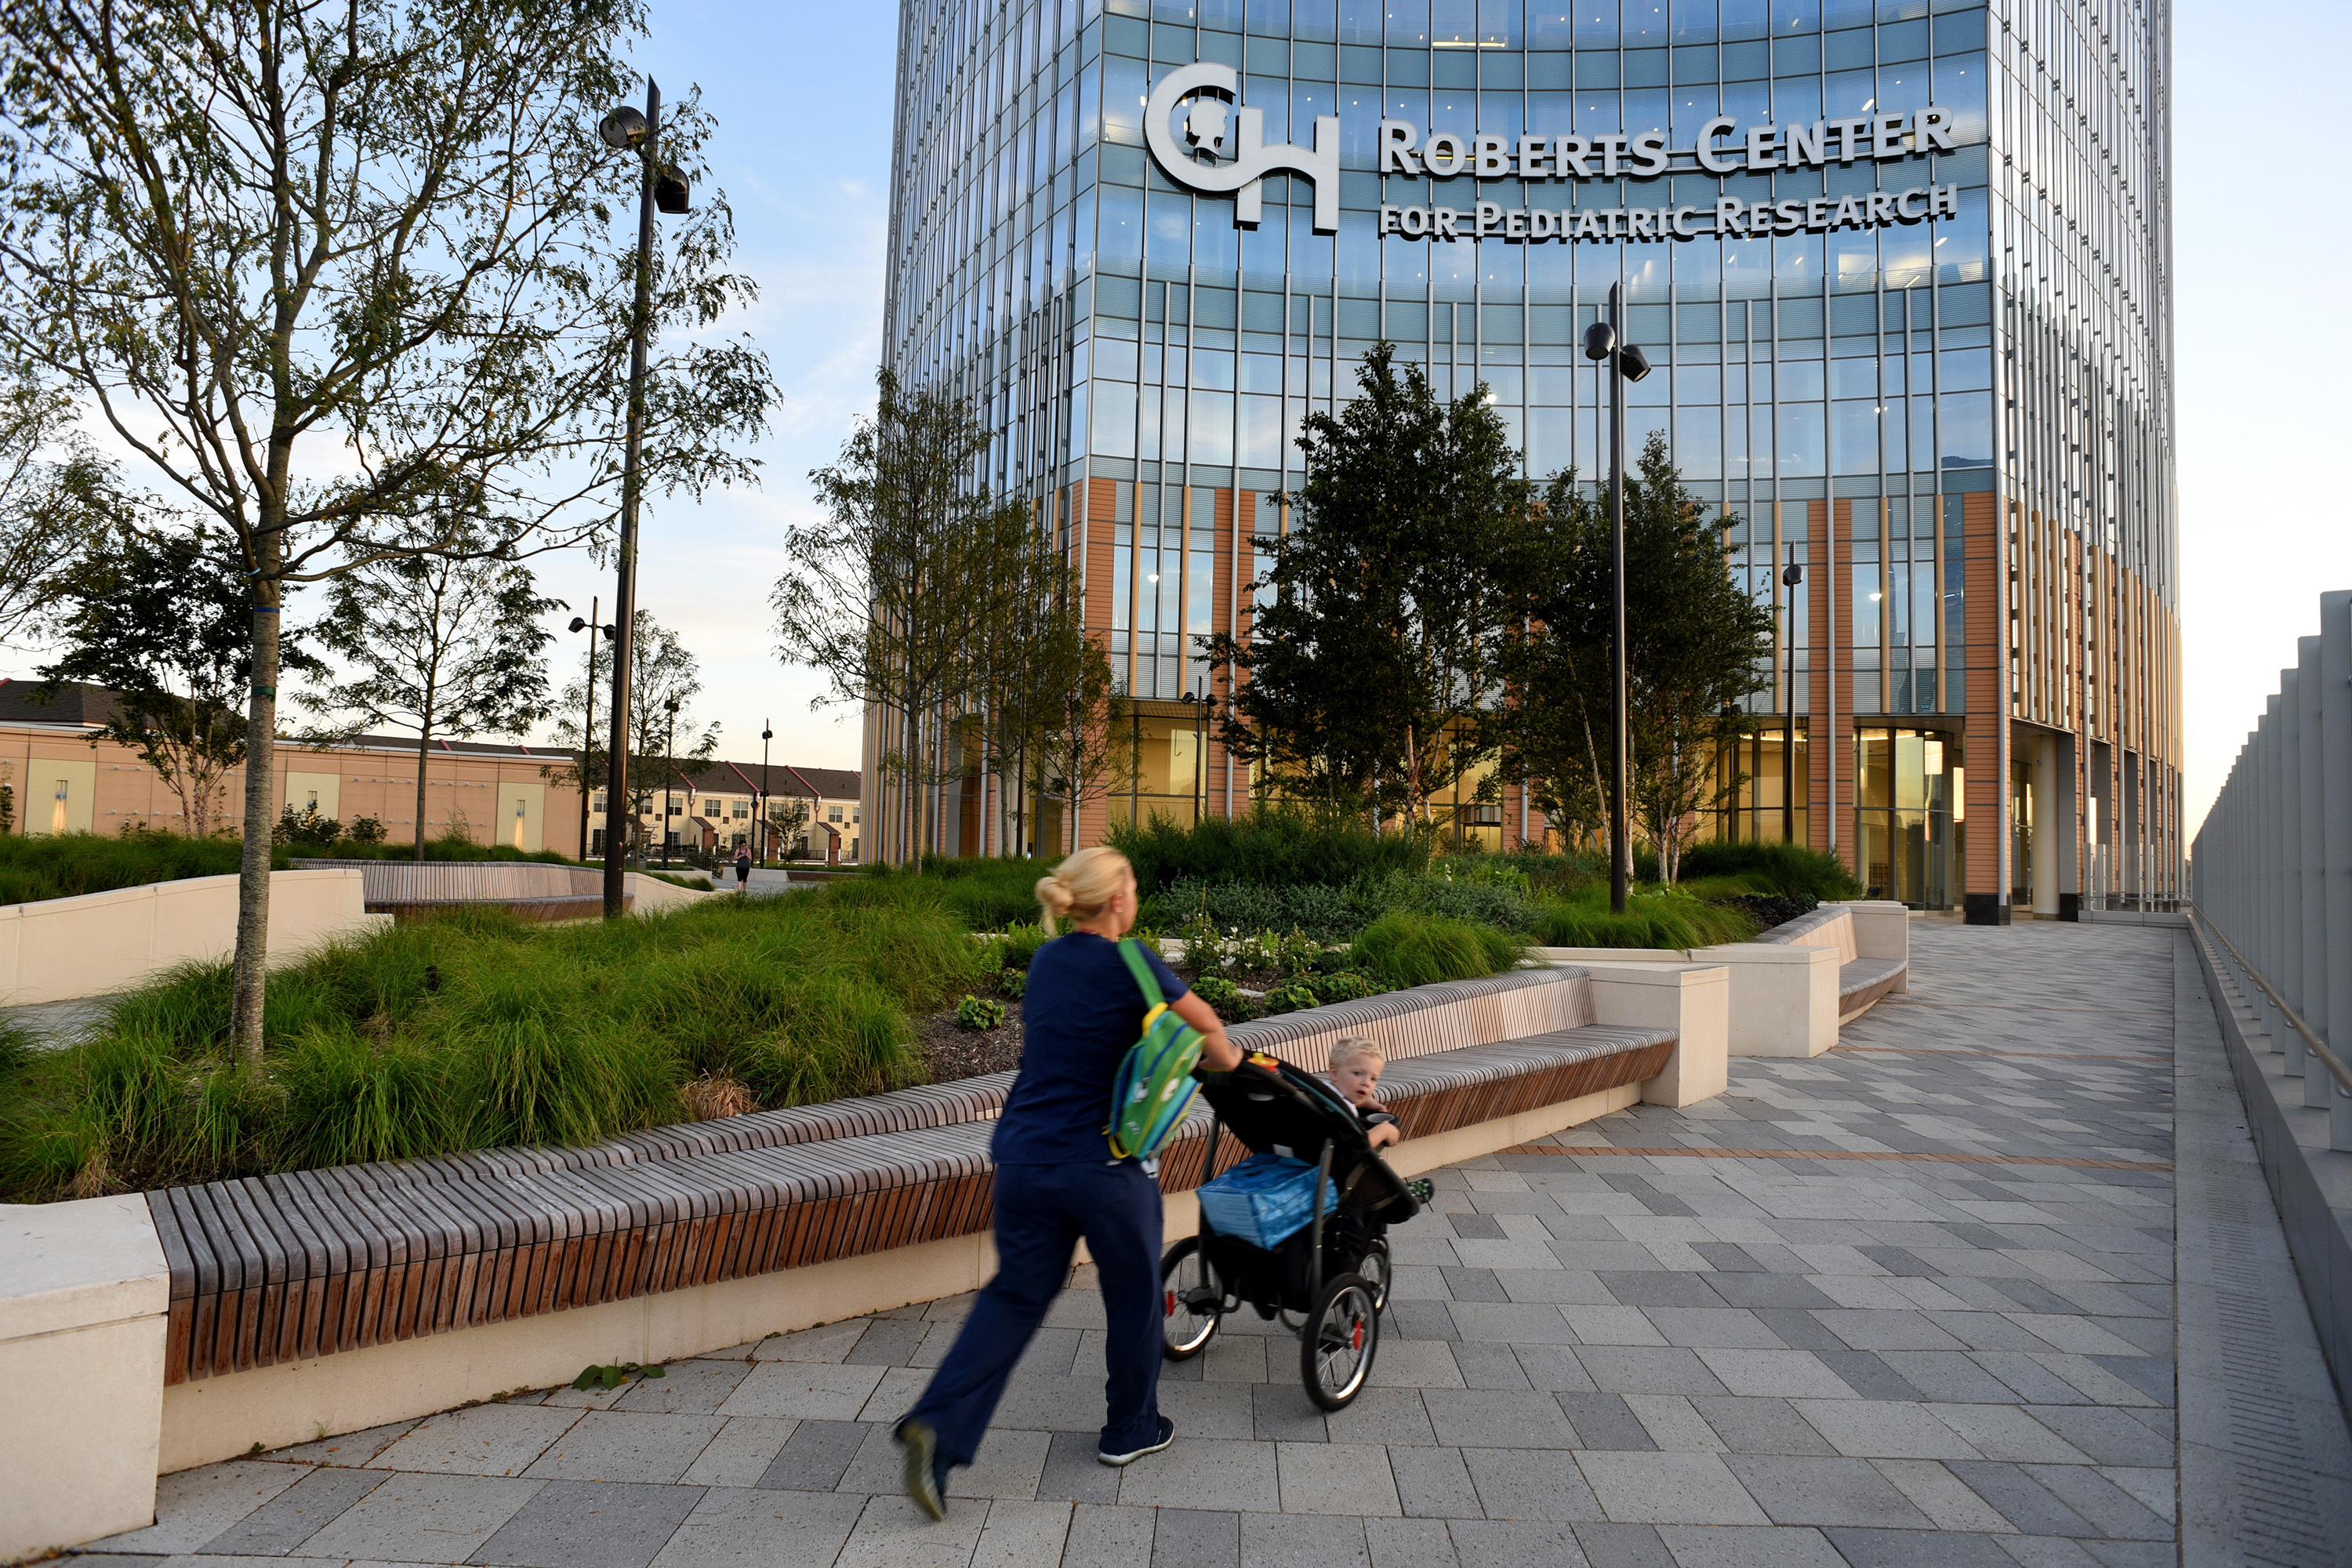 The entrance plaza at the Roberts Center for Pediatric Research is overwhelmed by large planters.